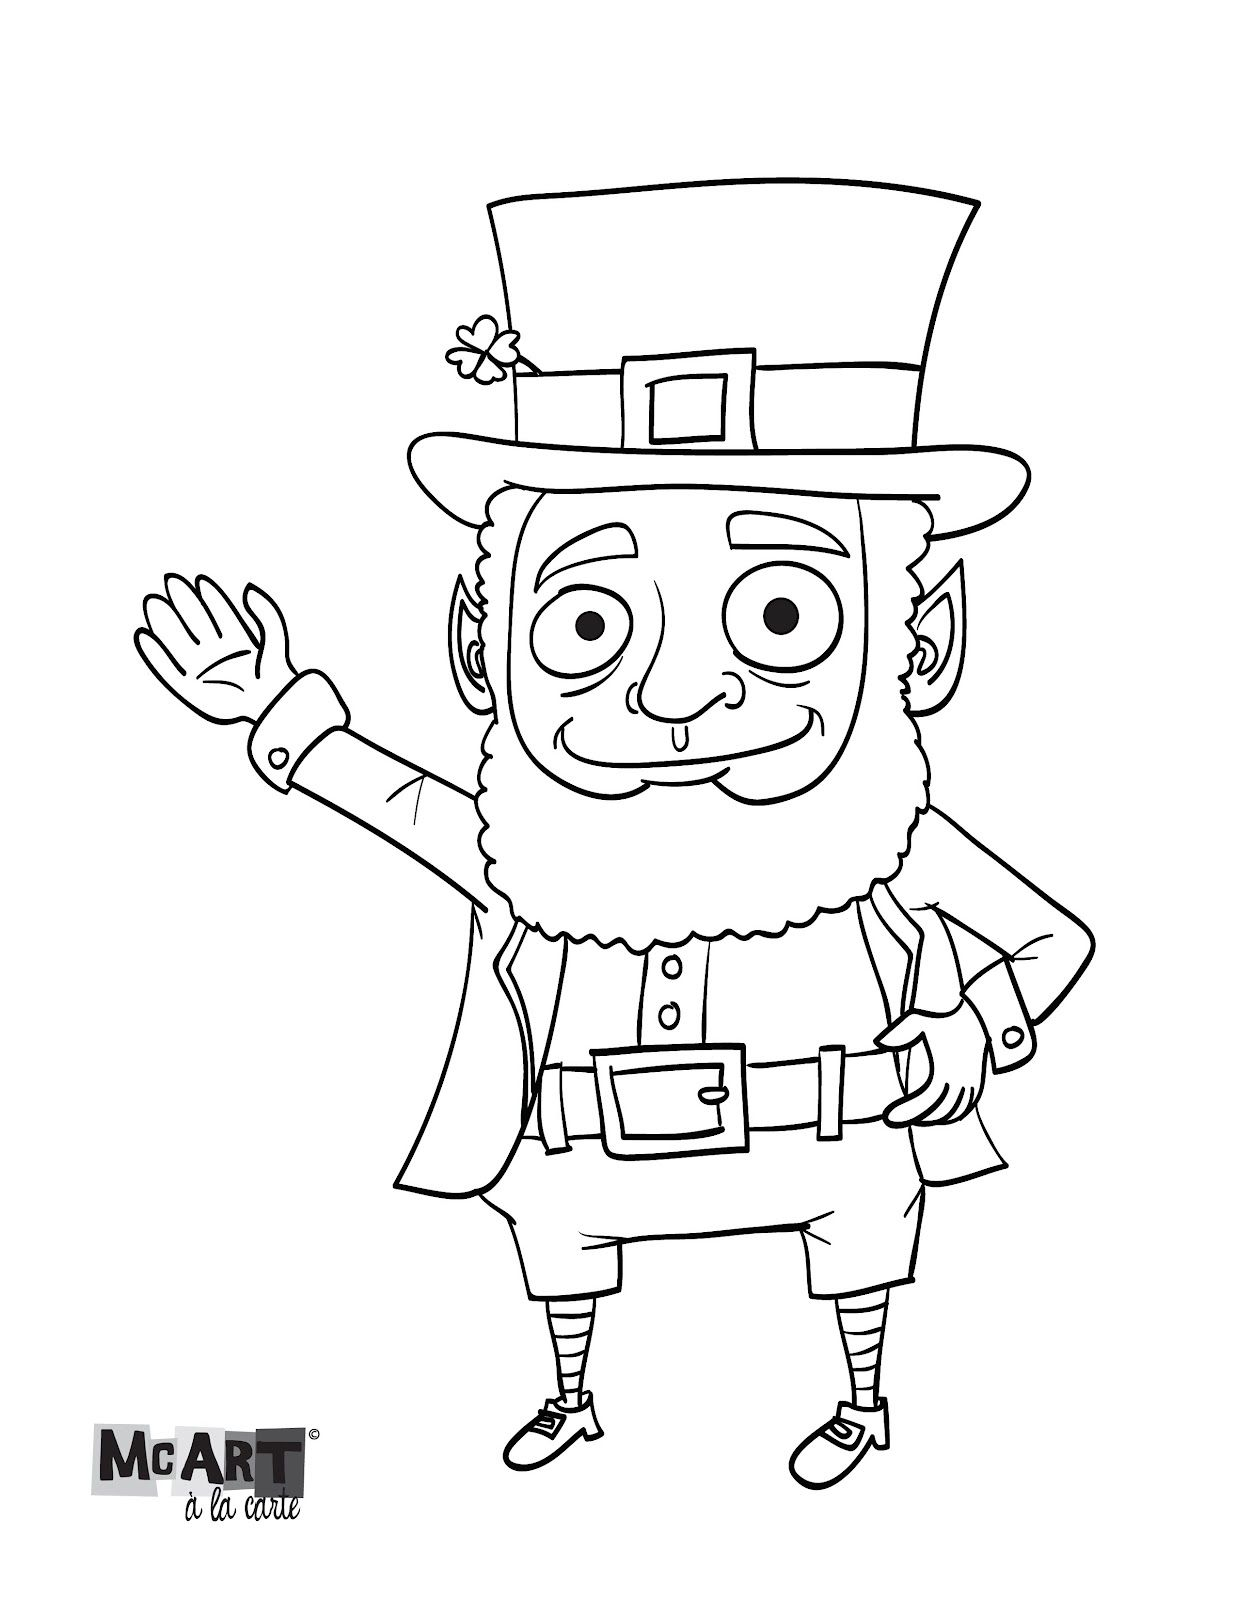 Coloring sheet leprechaun - Mcart La Carte Leprechaun Coloring Page